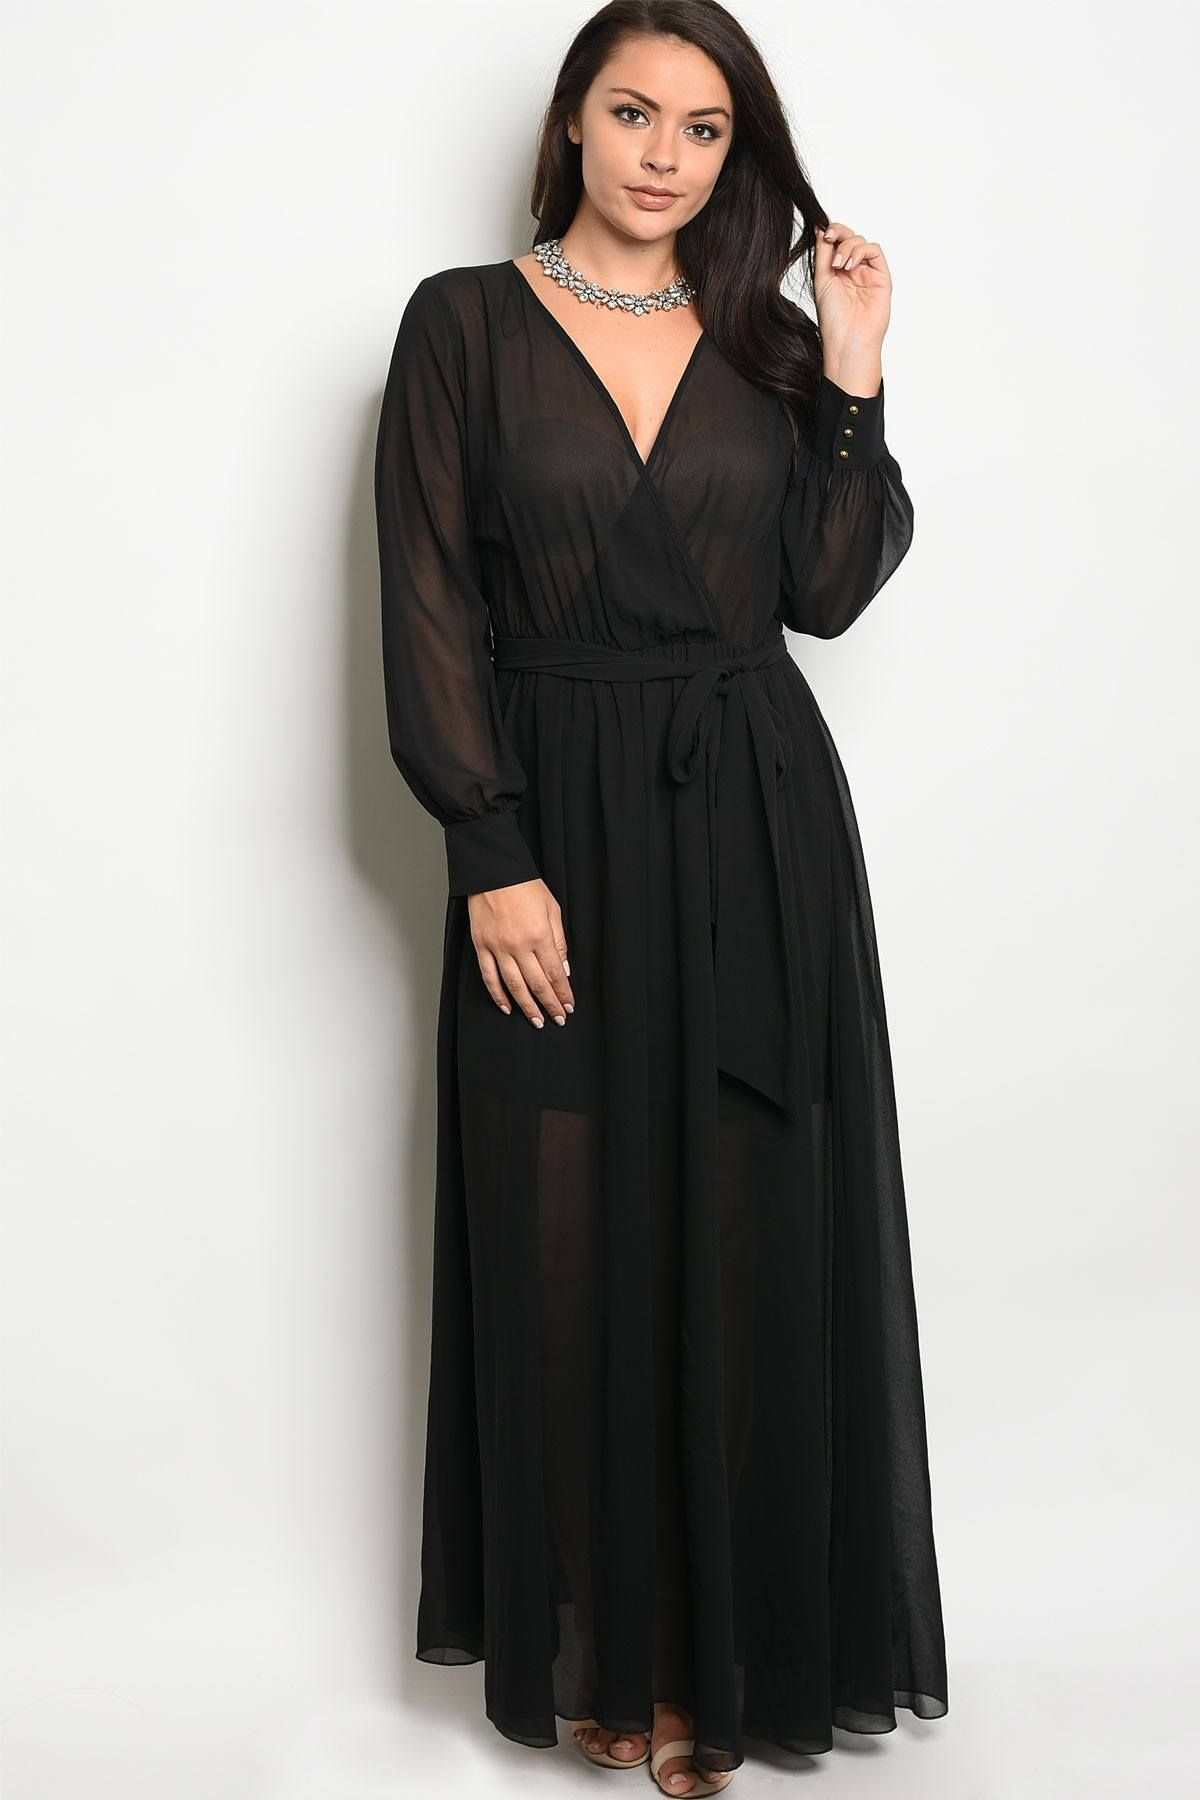 Ladies fashion plus size long sleeve chiffon maxi dress with a v